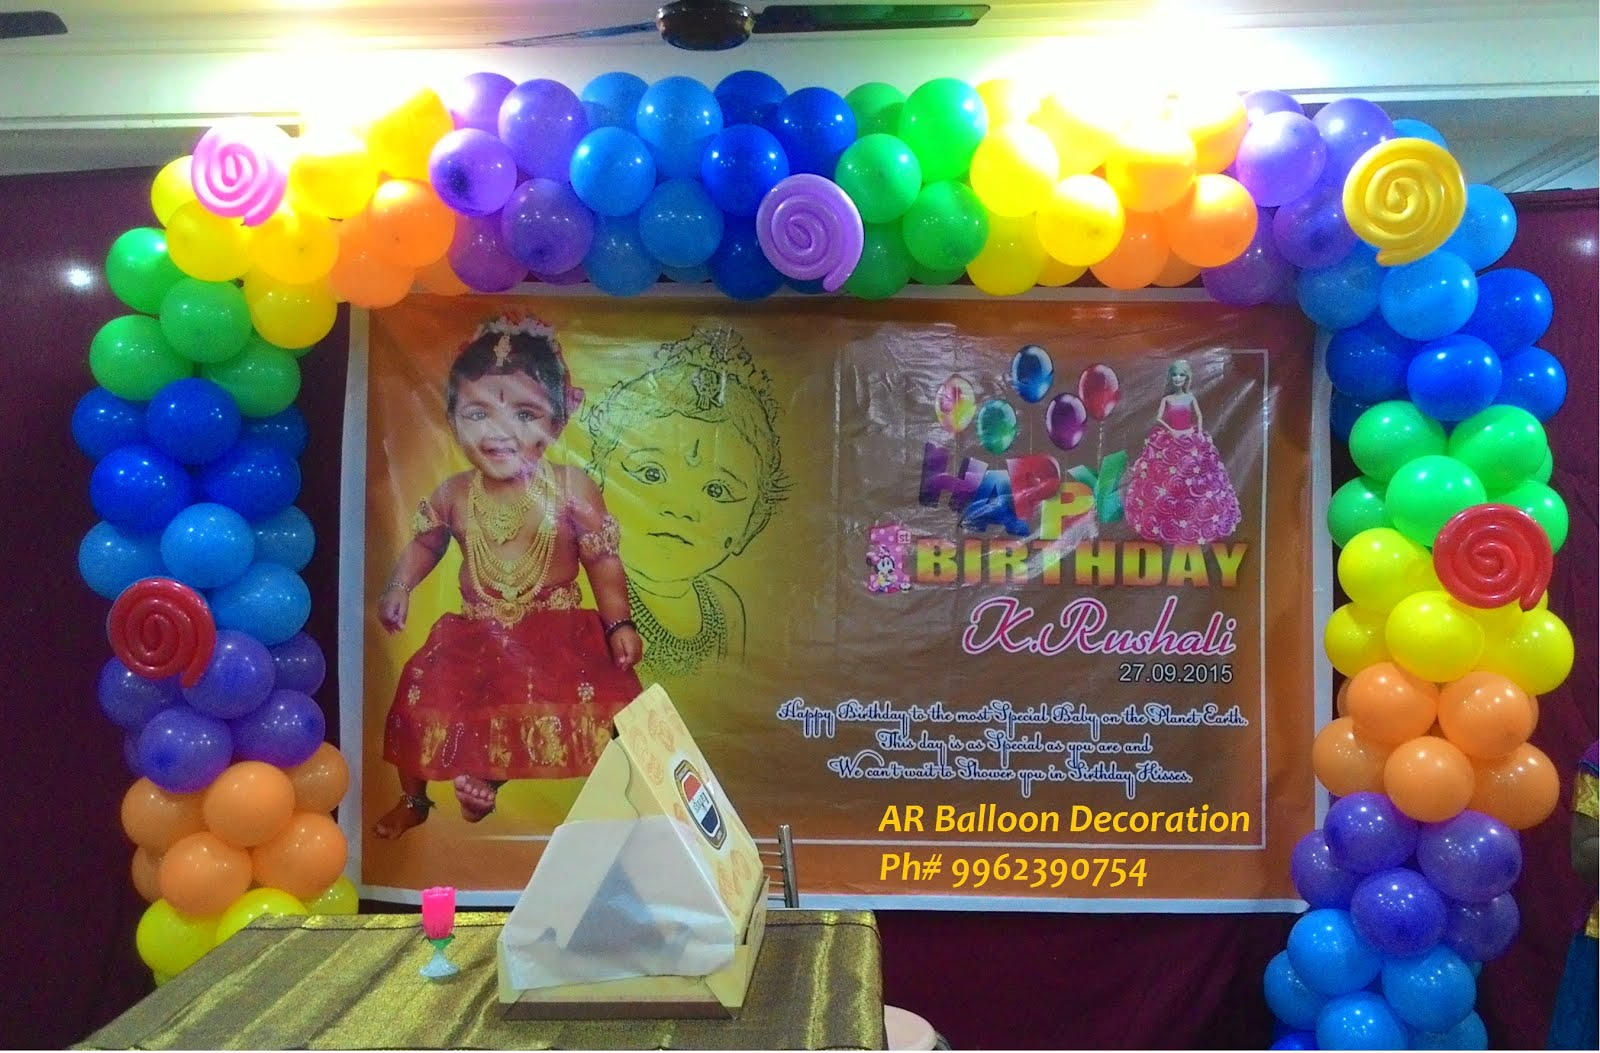 ... Balloon Decoration: The best balloon Decorations in Chennai, Saidapet